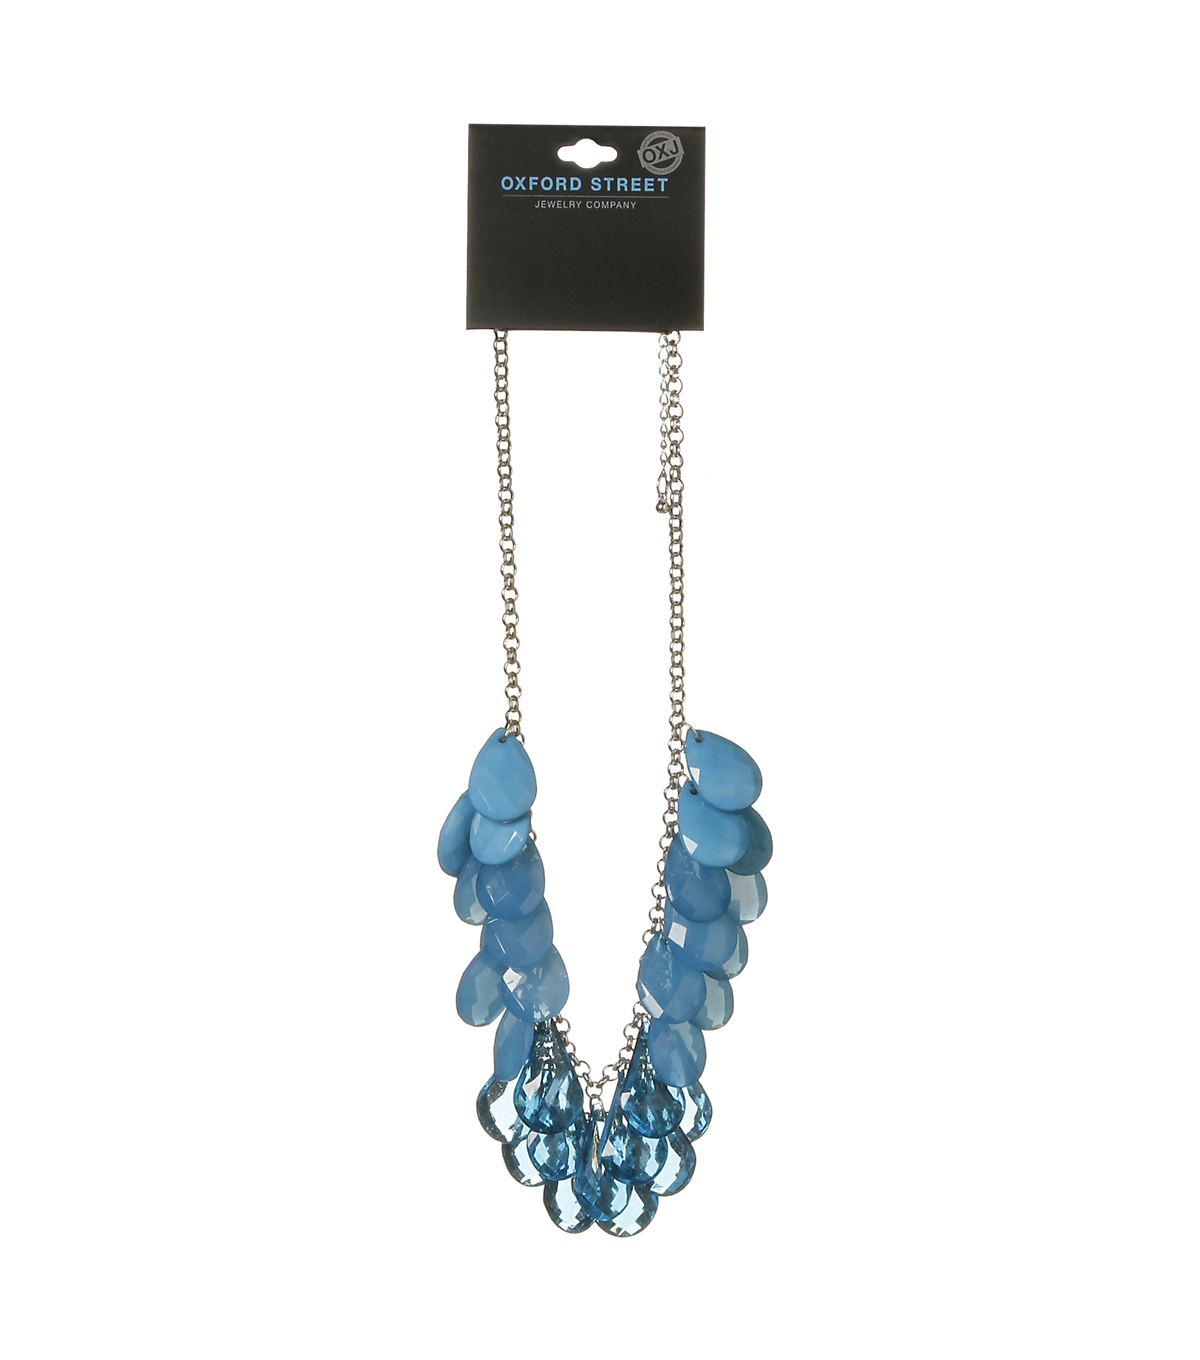 Oxford Street Jewelry Co. Blue Tear Drop Necklace w/Silver Chain